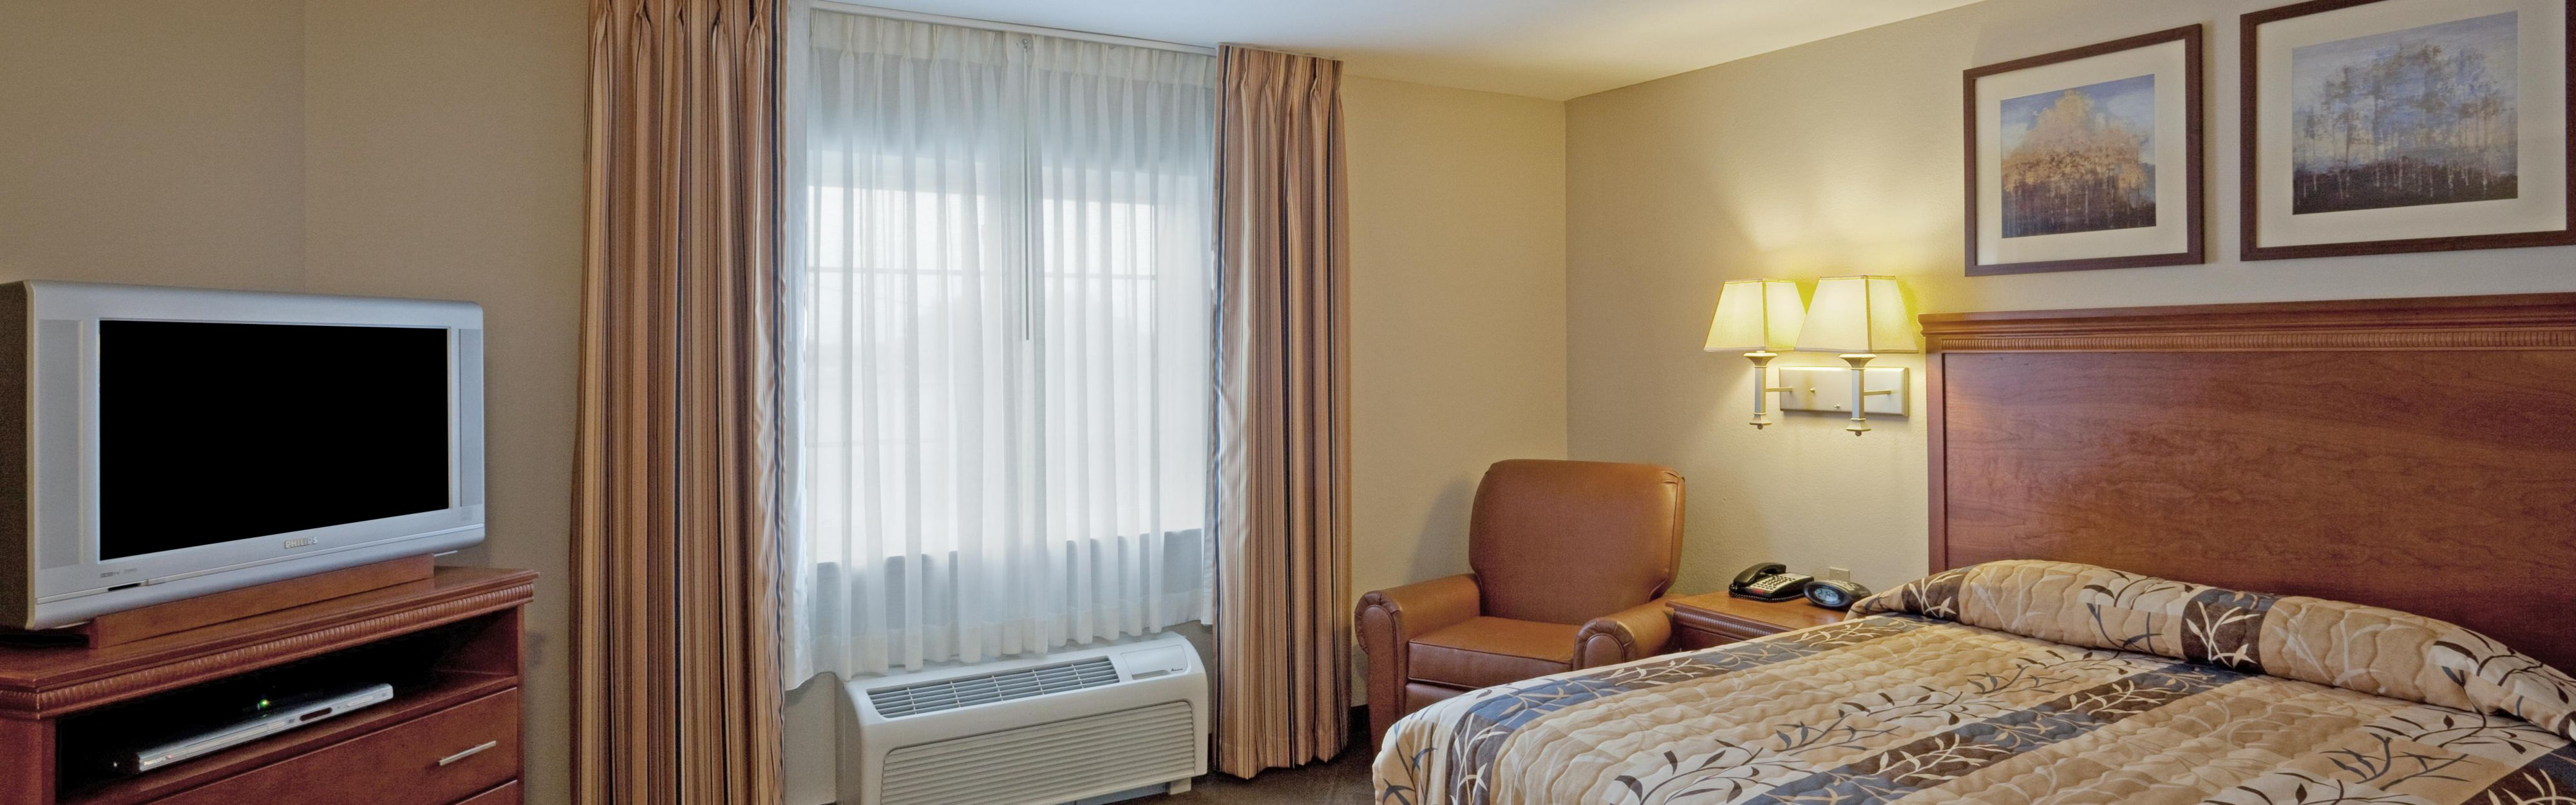 Candlewood Suites West Springfield image 1